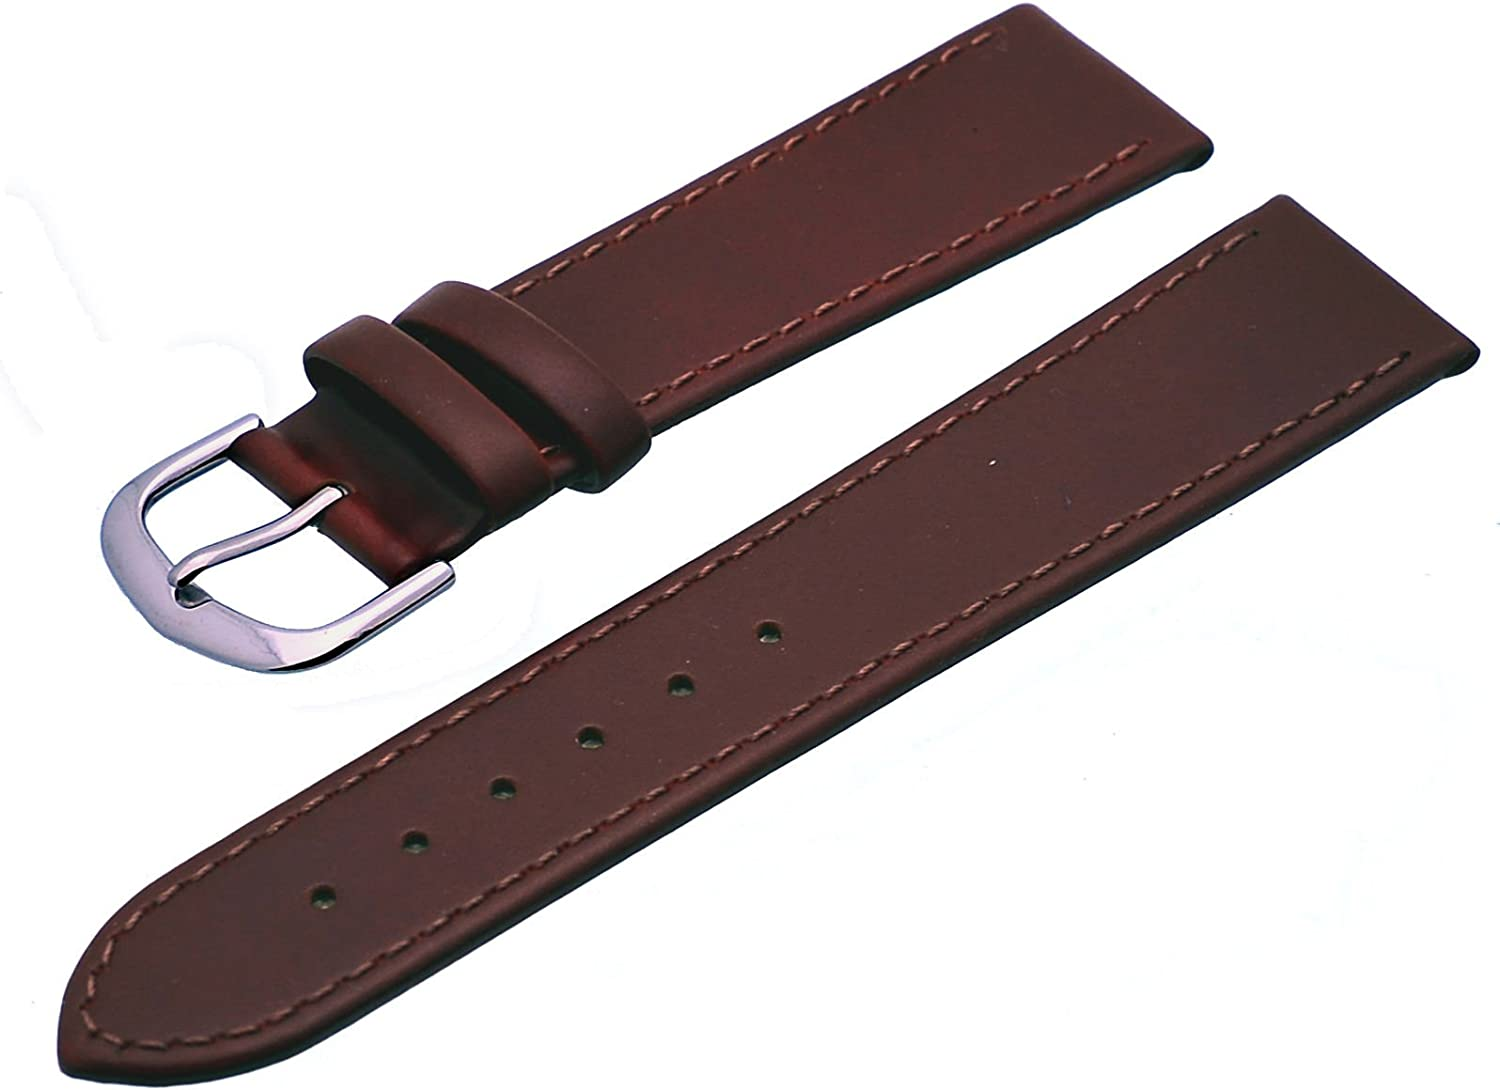 REV Black Brown Plain Pattern Leather Replac Watch Genuine price Sales for sale Strap